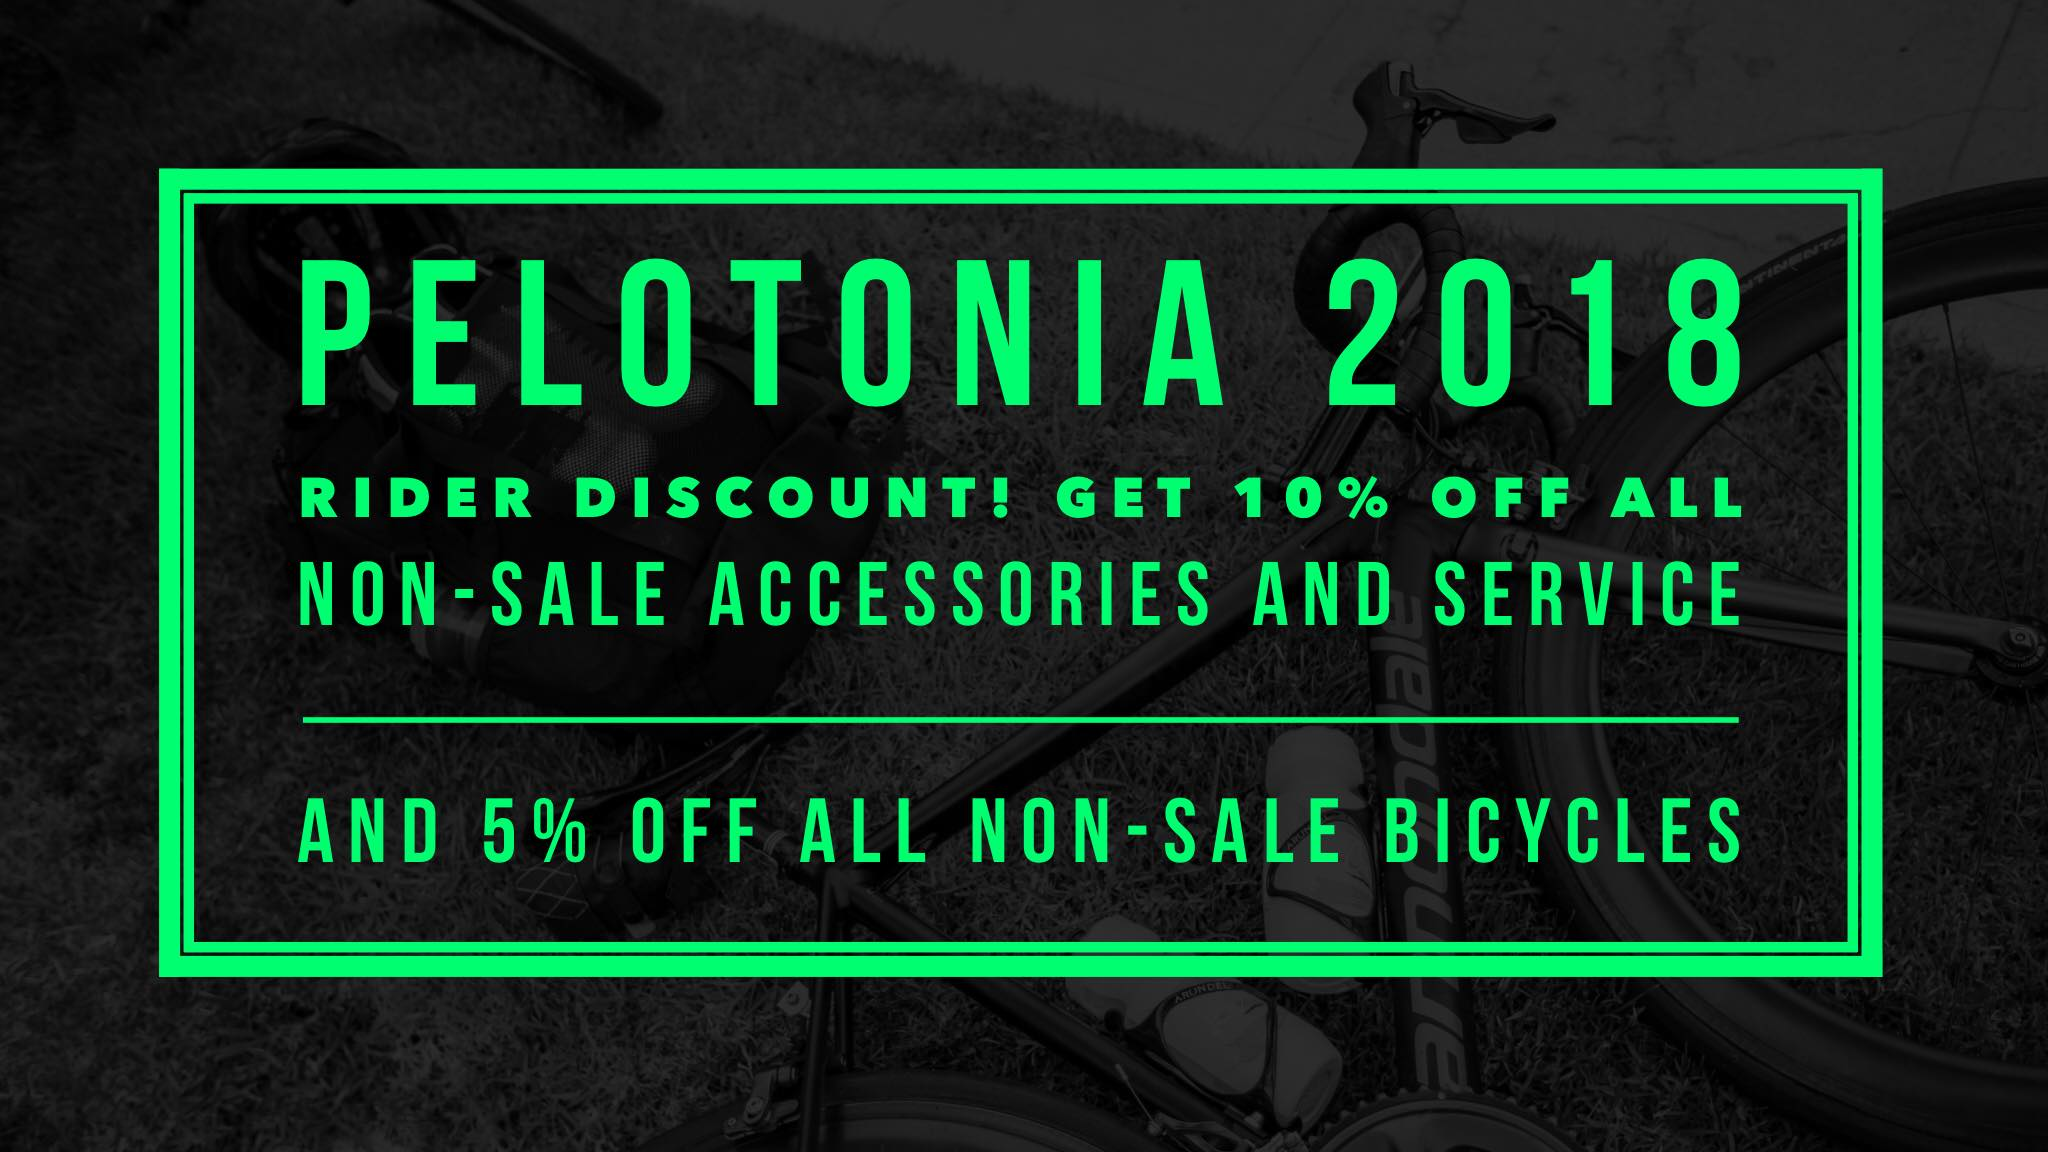 PELOTONIA 2018 RIDER DISCOUNT! 10% OFF AN NON-SALE ACCESSORIES AND SERVICE AND 5% OFF ALL NON-SALE BICYCLES